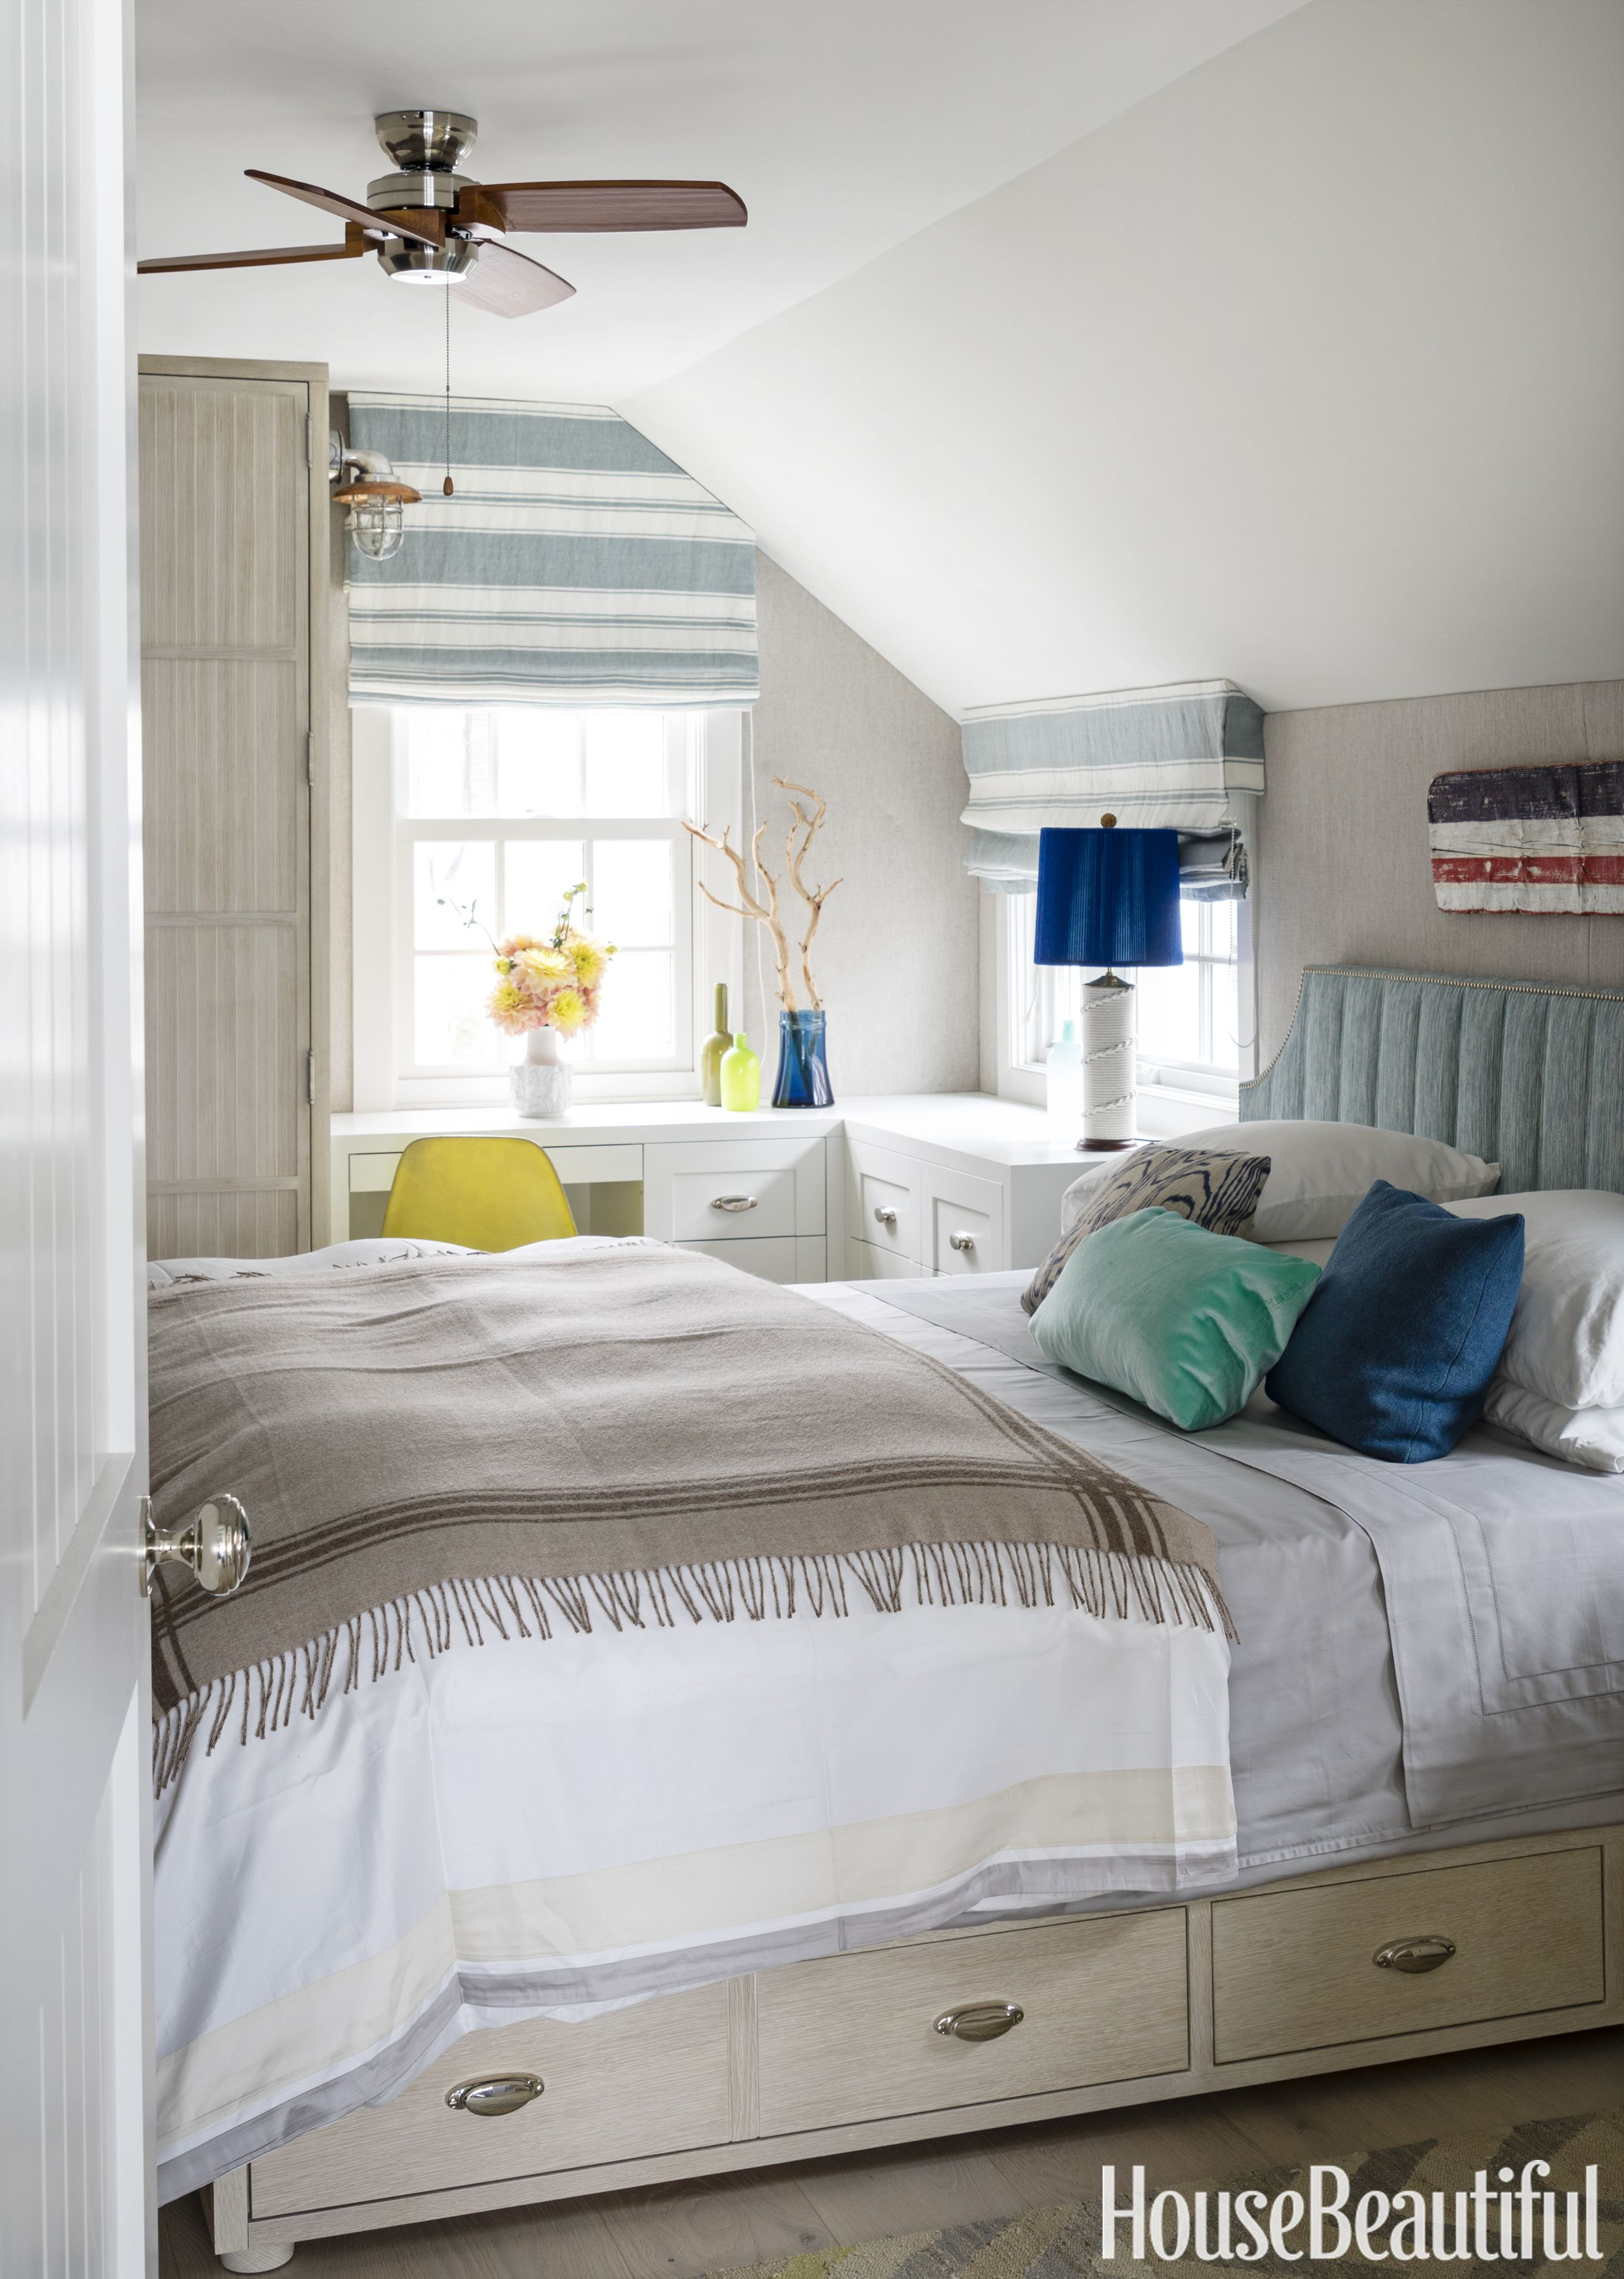 unique bedroom d cor ideas you haven t seen before new england rh pinterest com